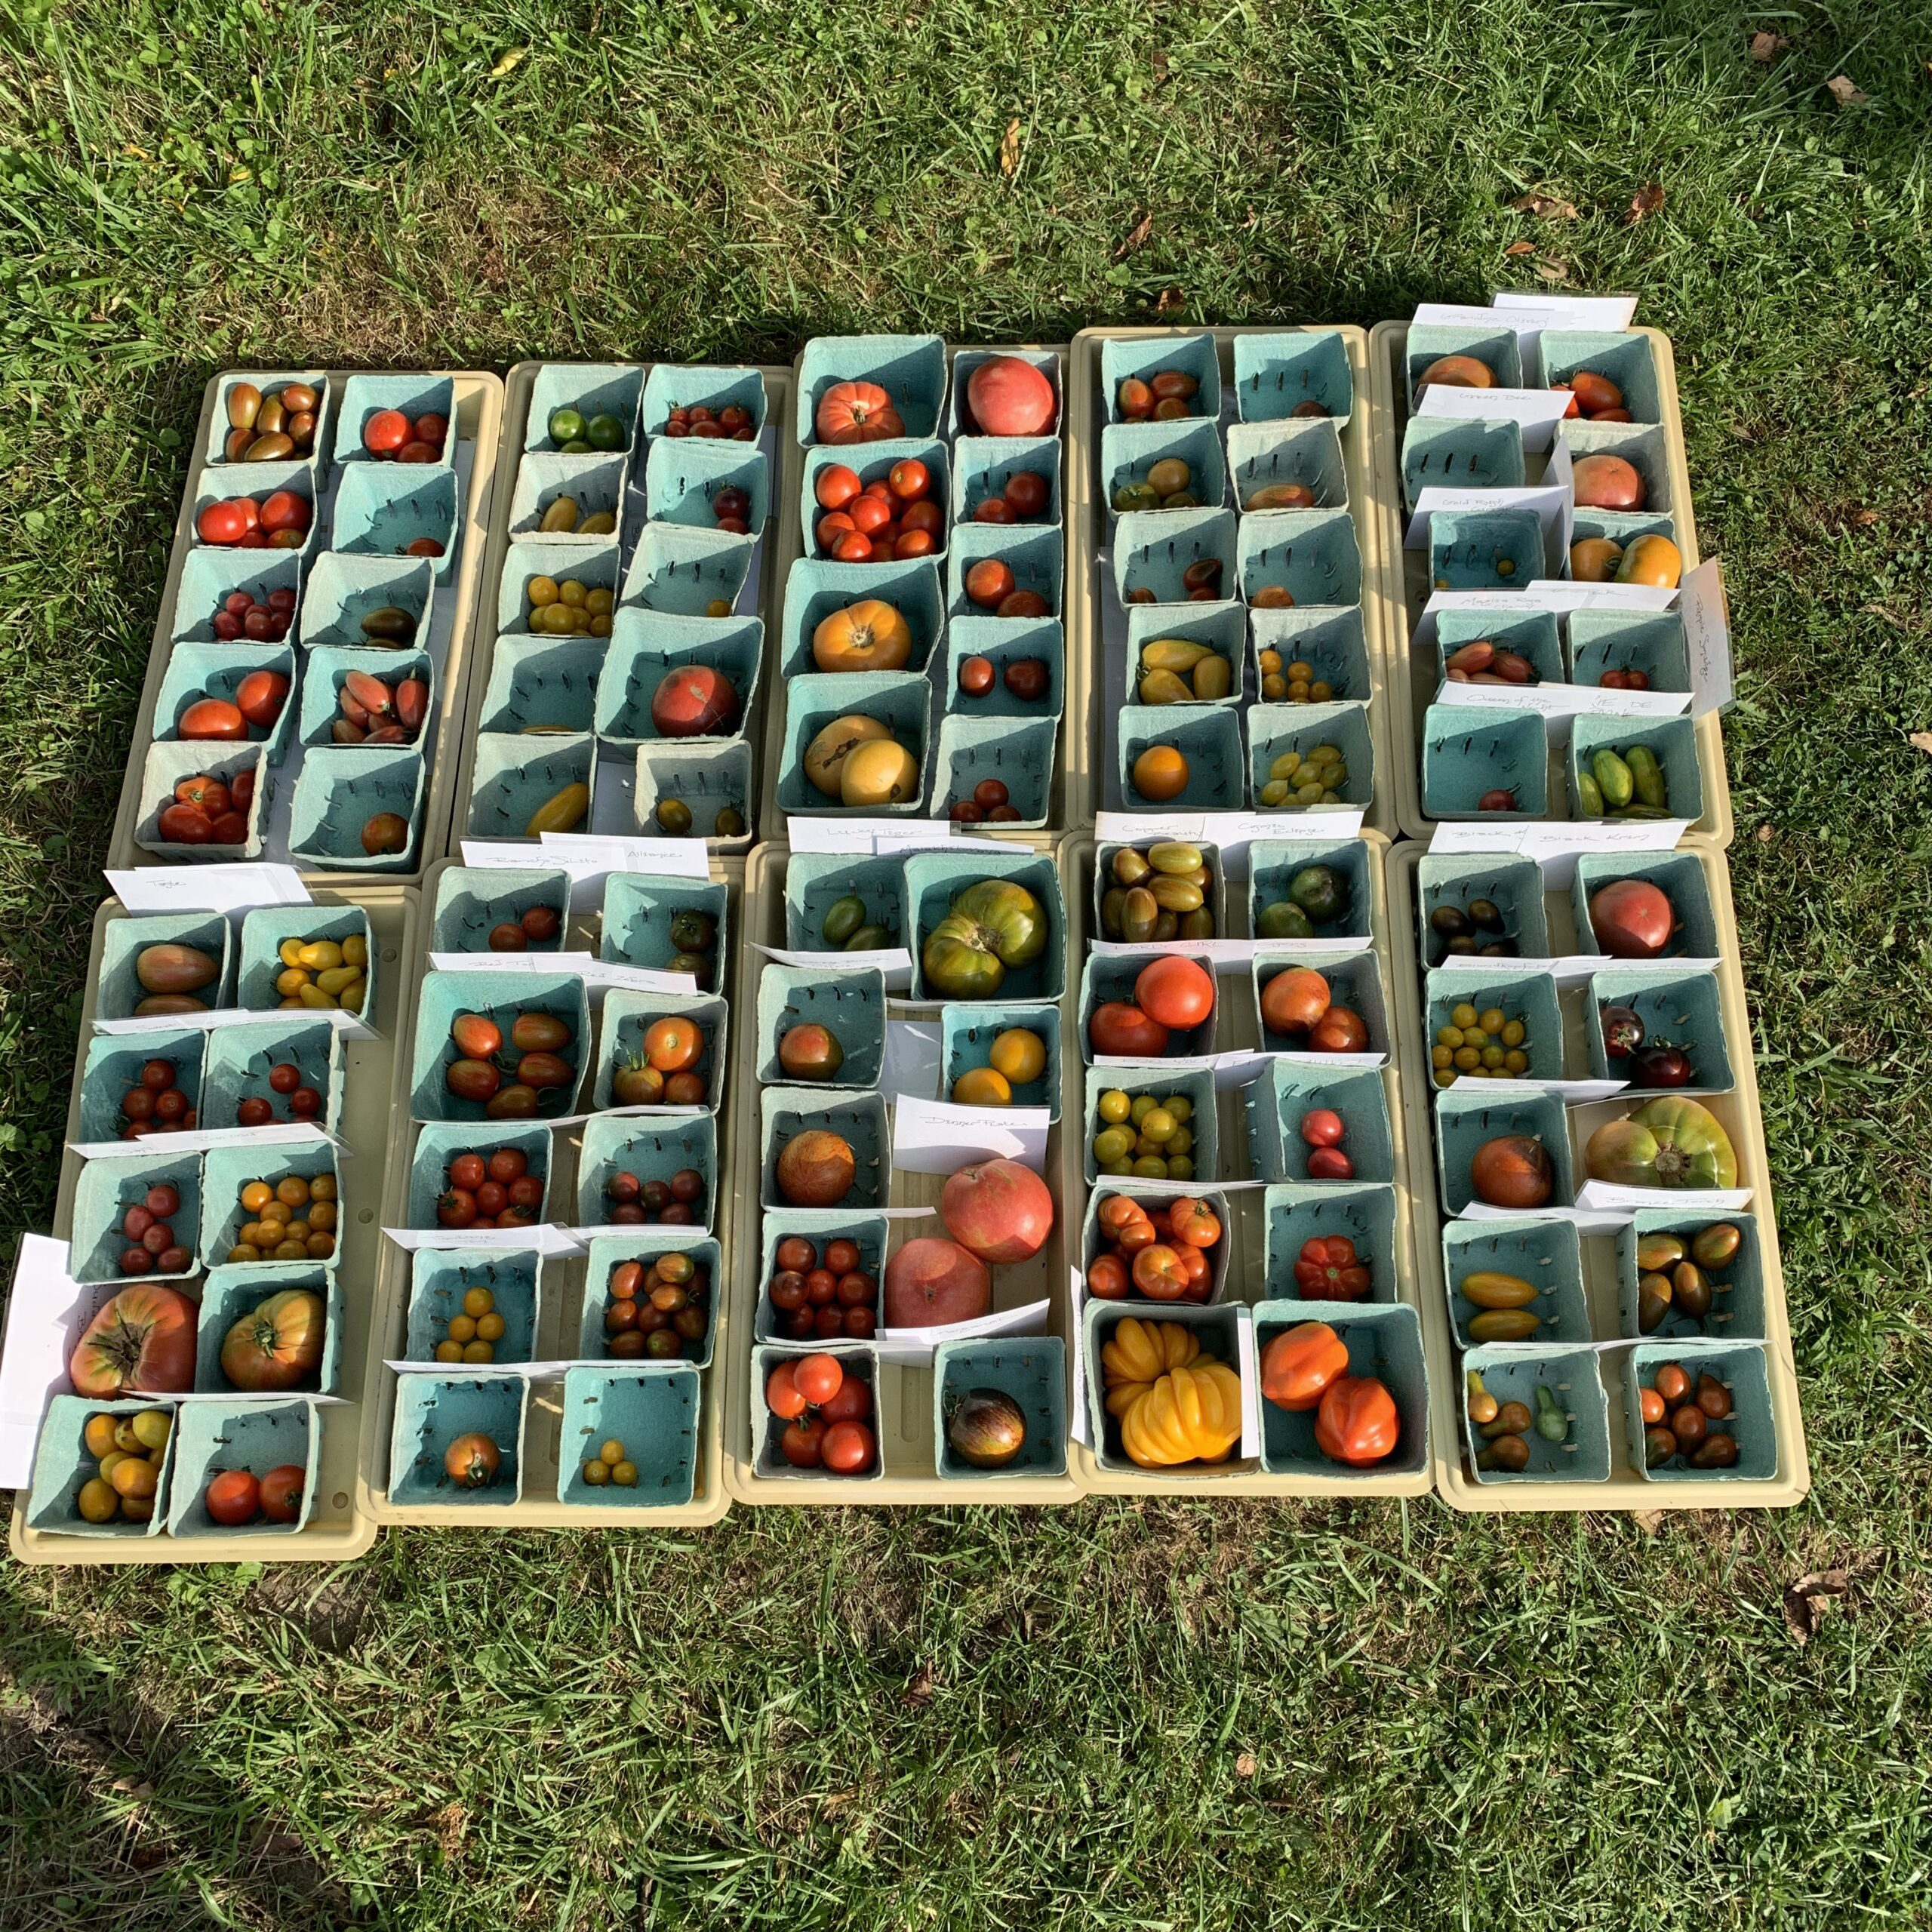 Image of one day's harvest, with about a hundred types.